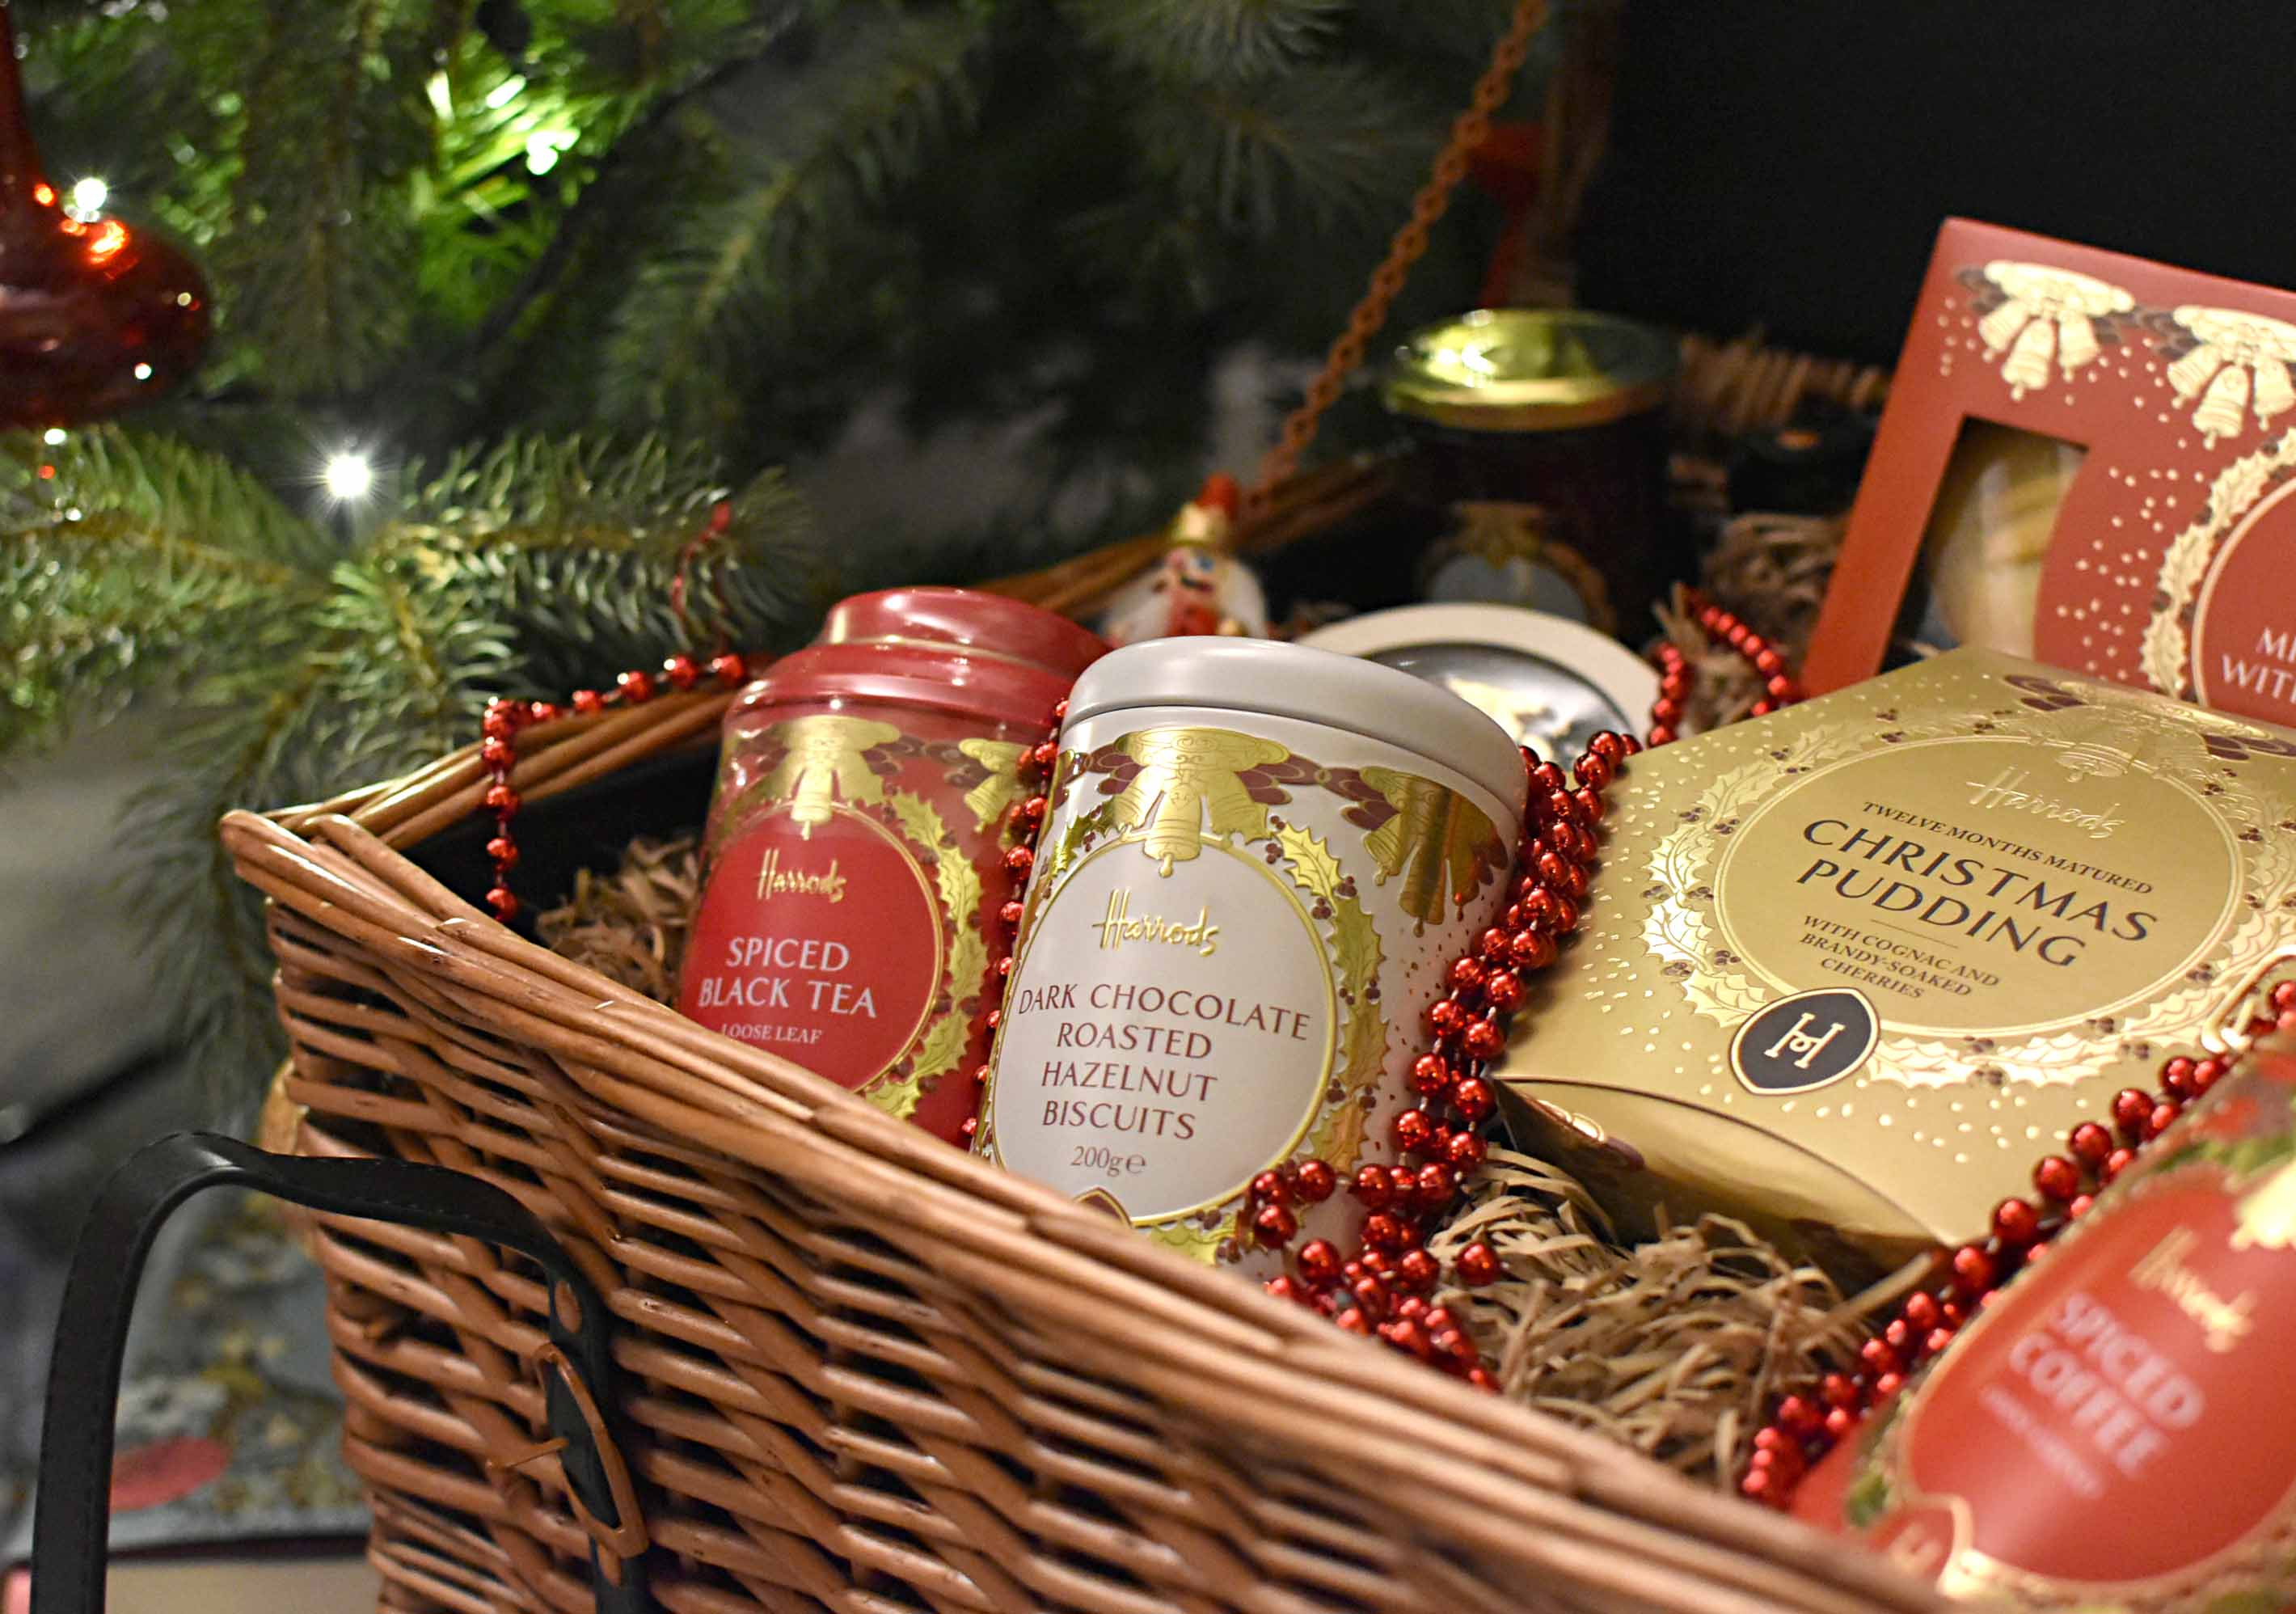 We invited some friends over for a glass of wine while decorating the tree together and putting The Grosvenor hamper into place.